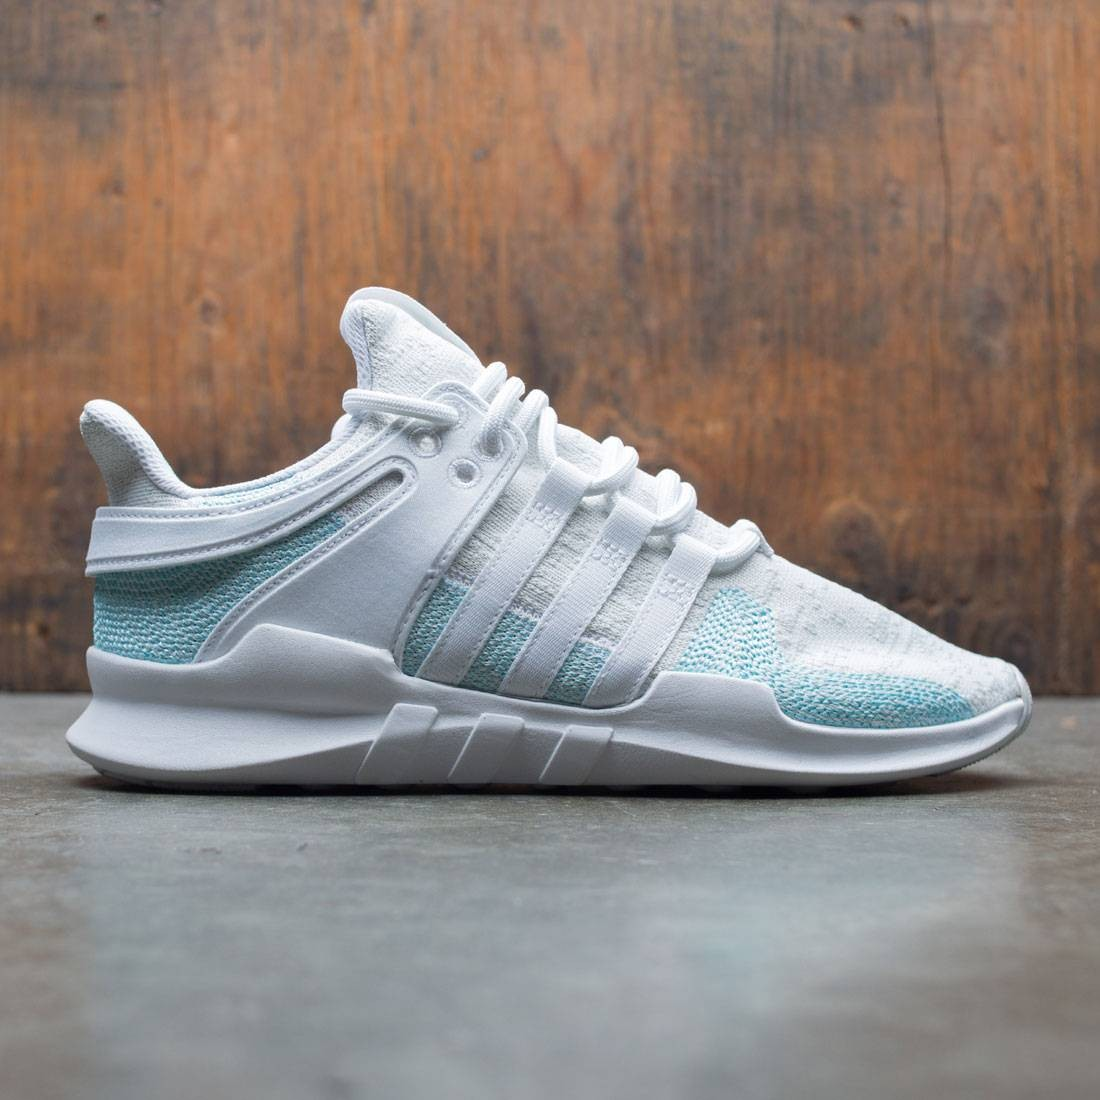 outlet store c4bef 838a6 Adidas Men EQT Support ADV CK Parley white blue spirit off w